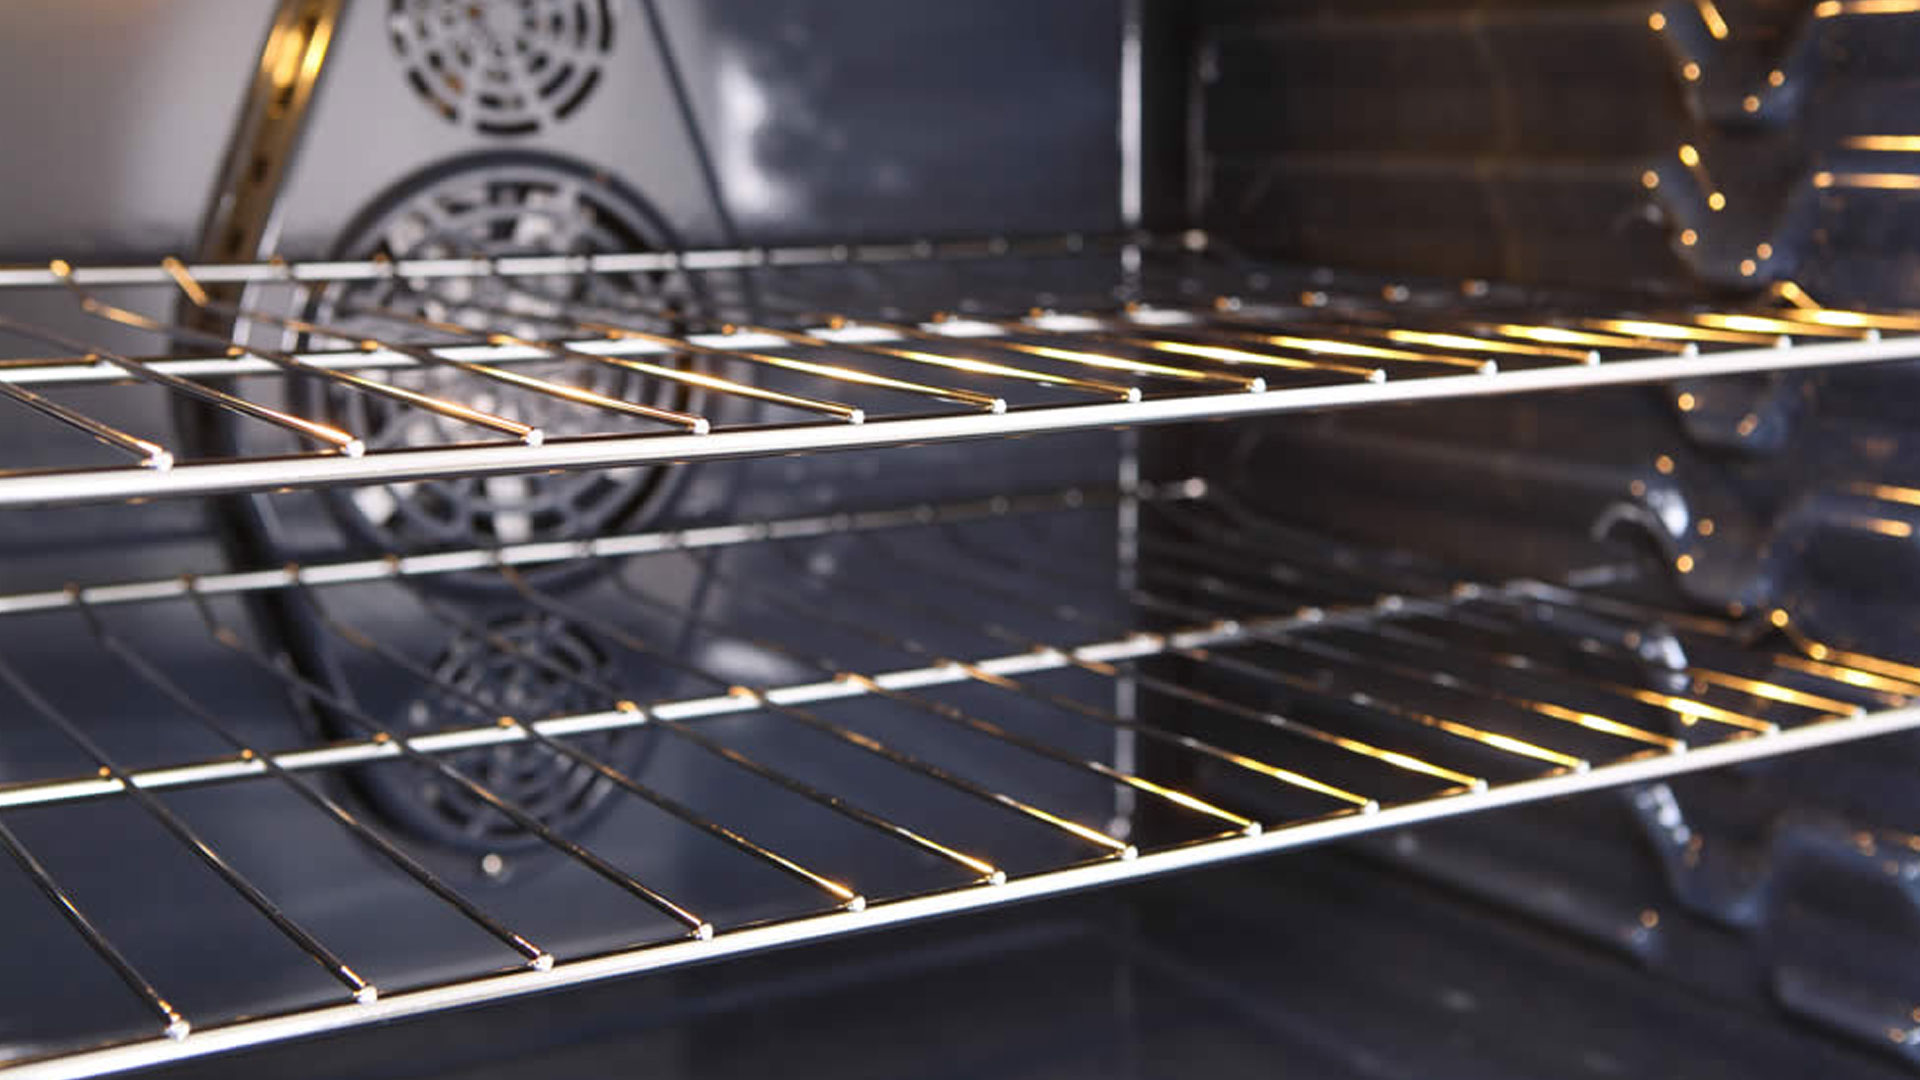 Mr O Professional Oven Cleaning Service Ards Belfast Bangor